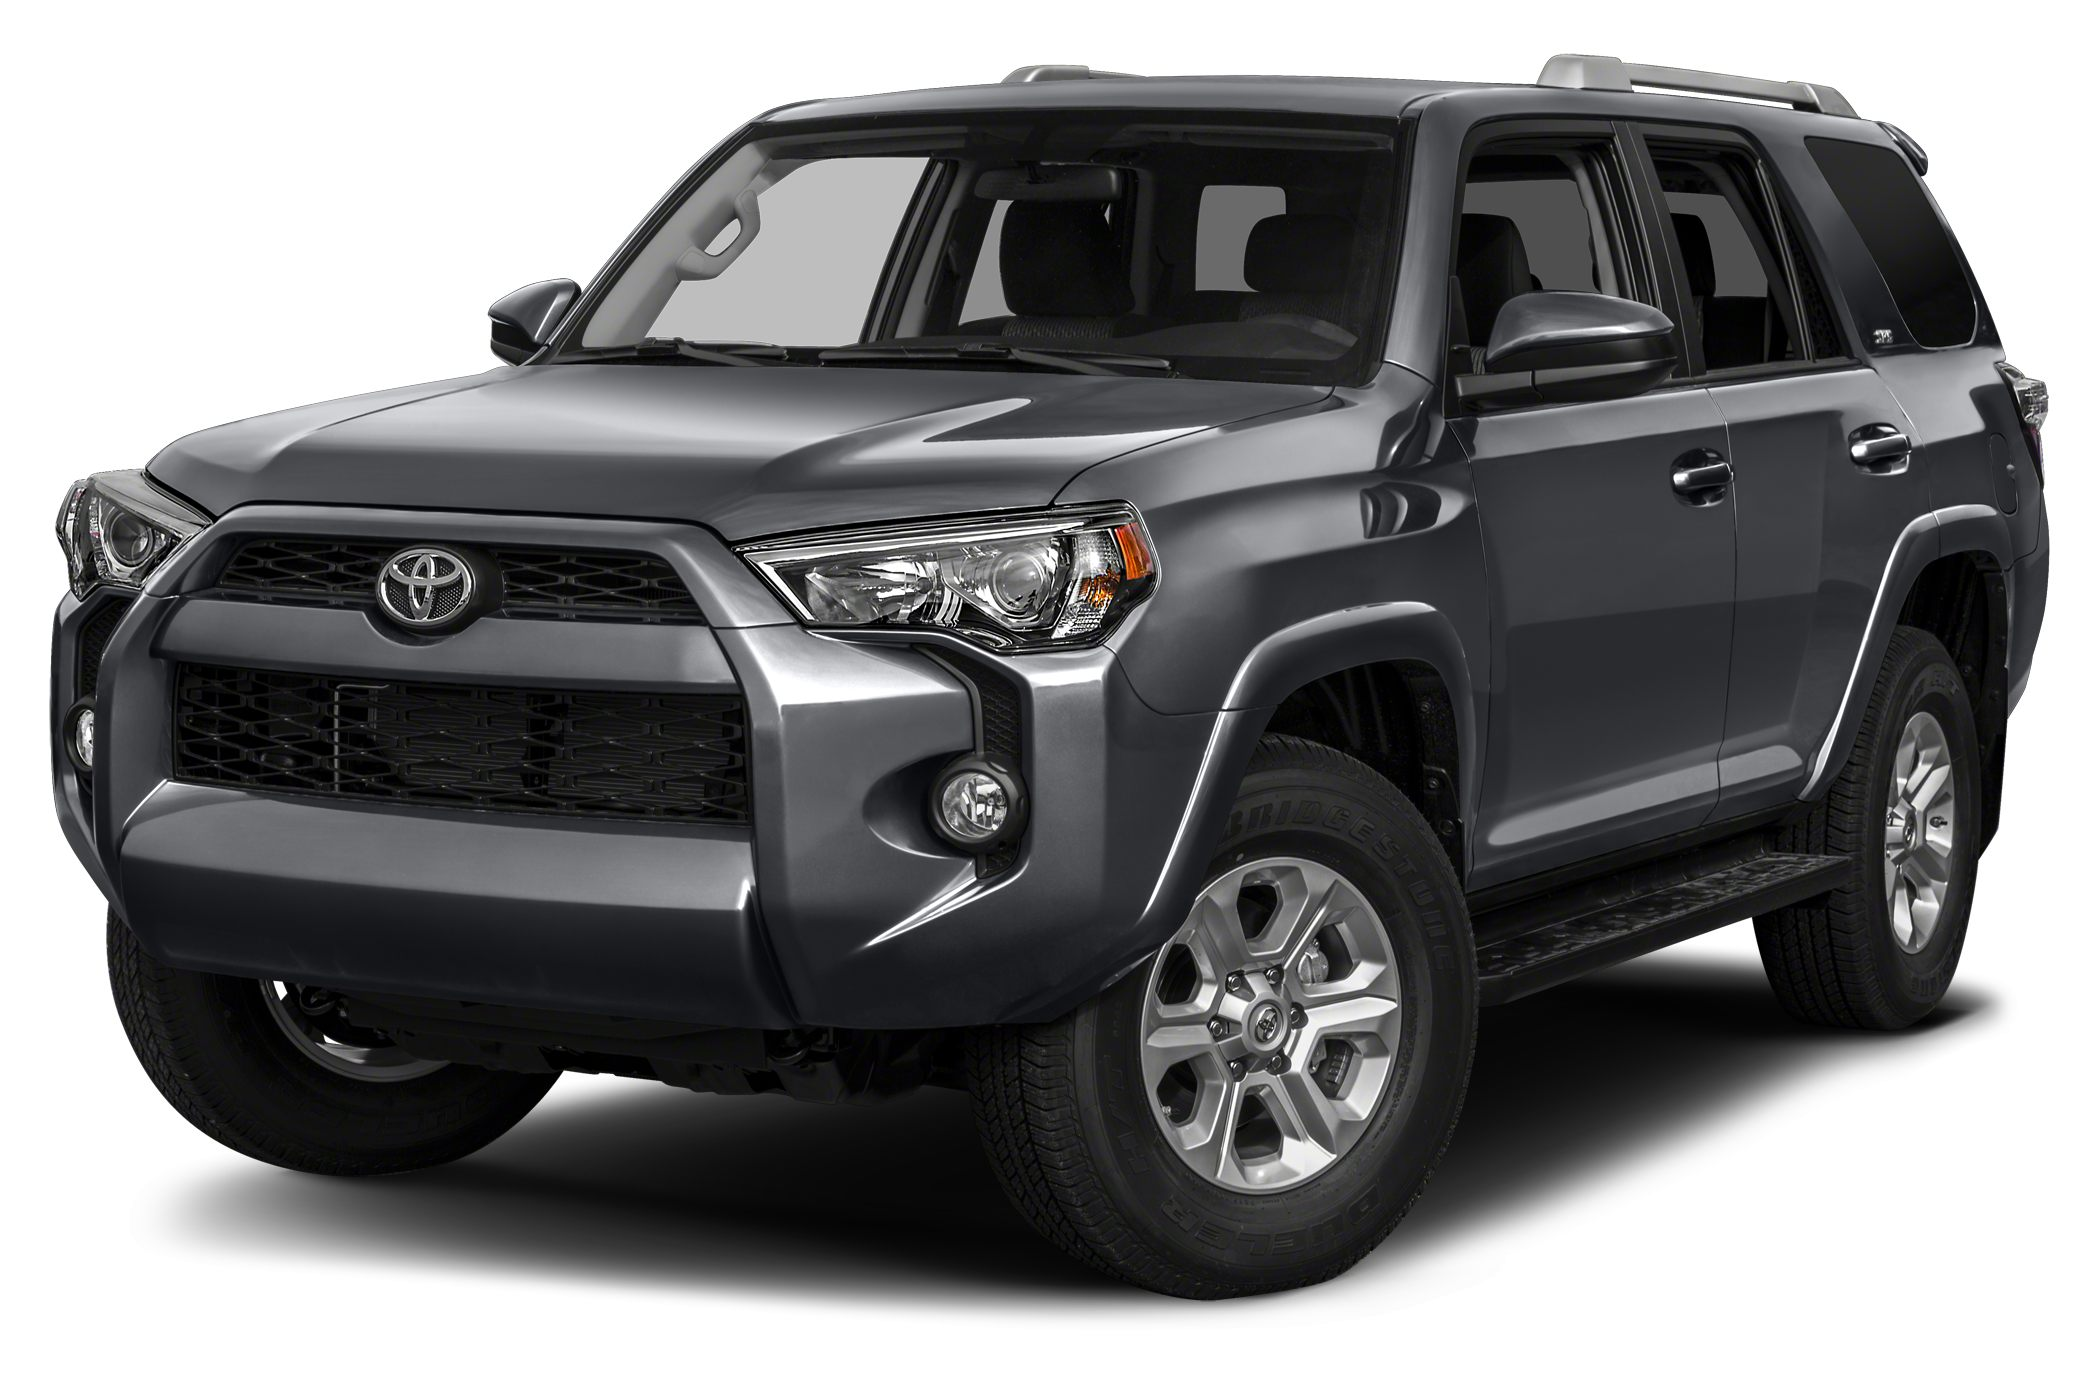 2015 Toyota 4Runner SR5 A family commuter on the weekdays and off-road adventurer on the weekends